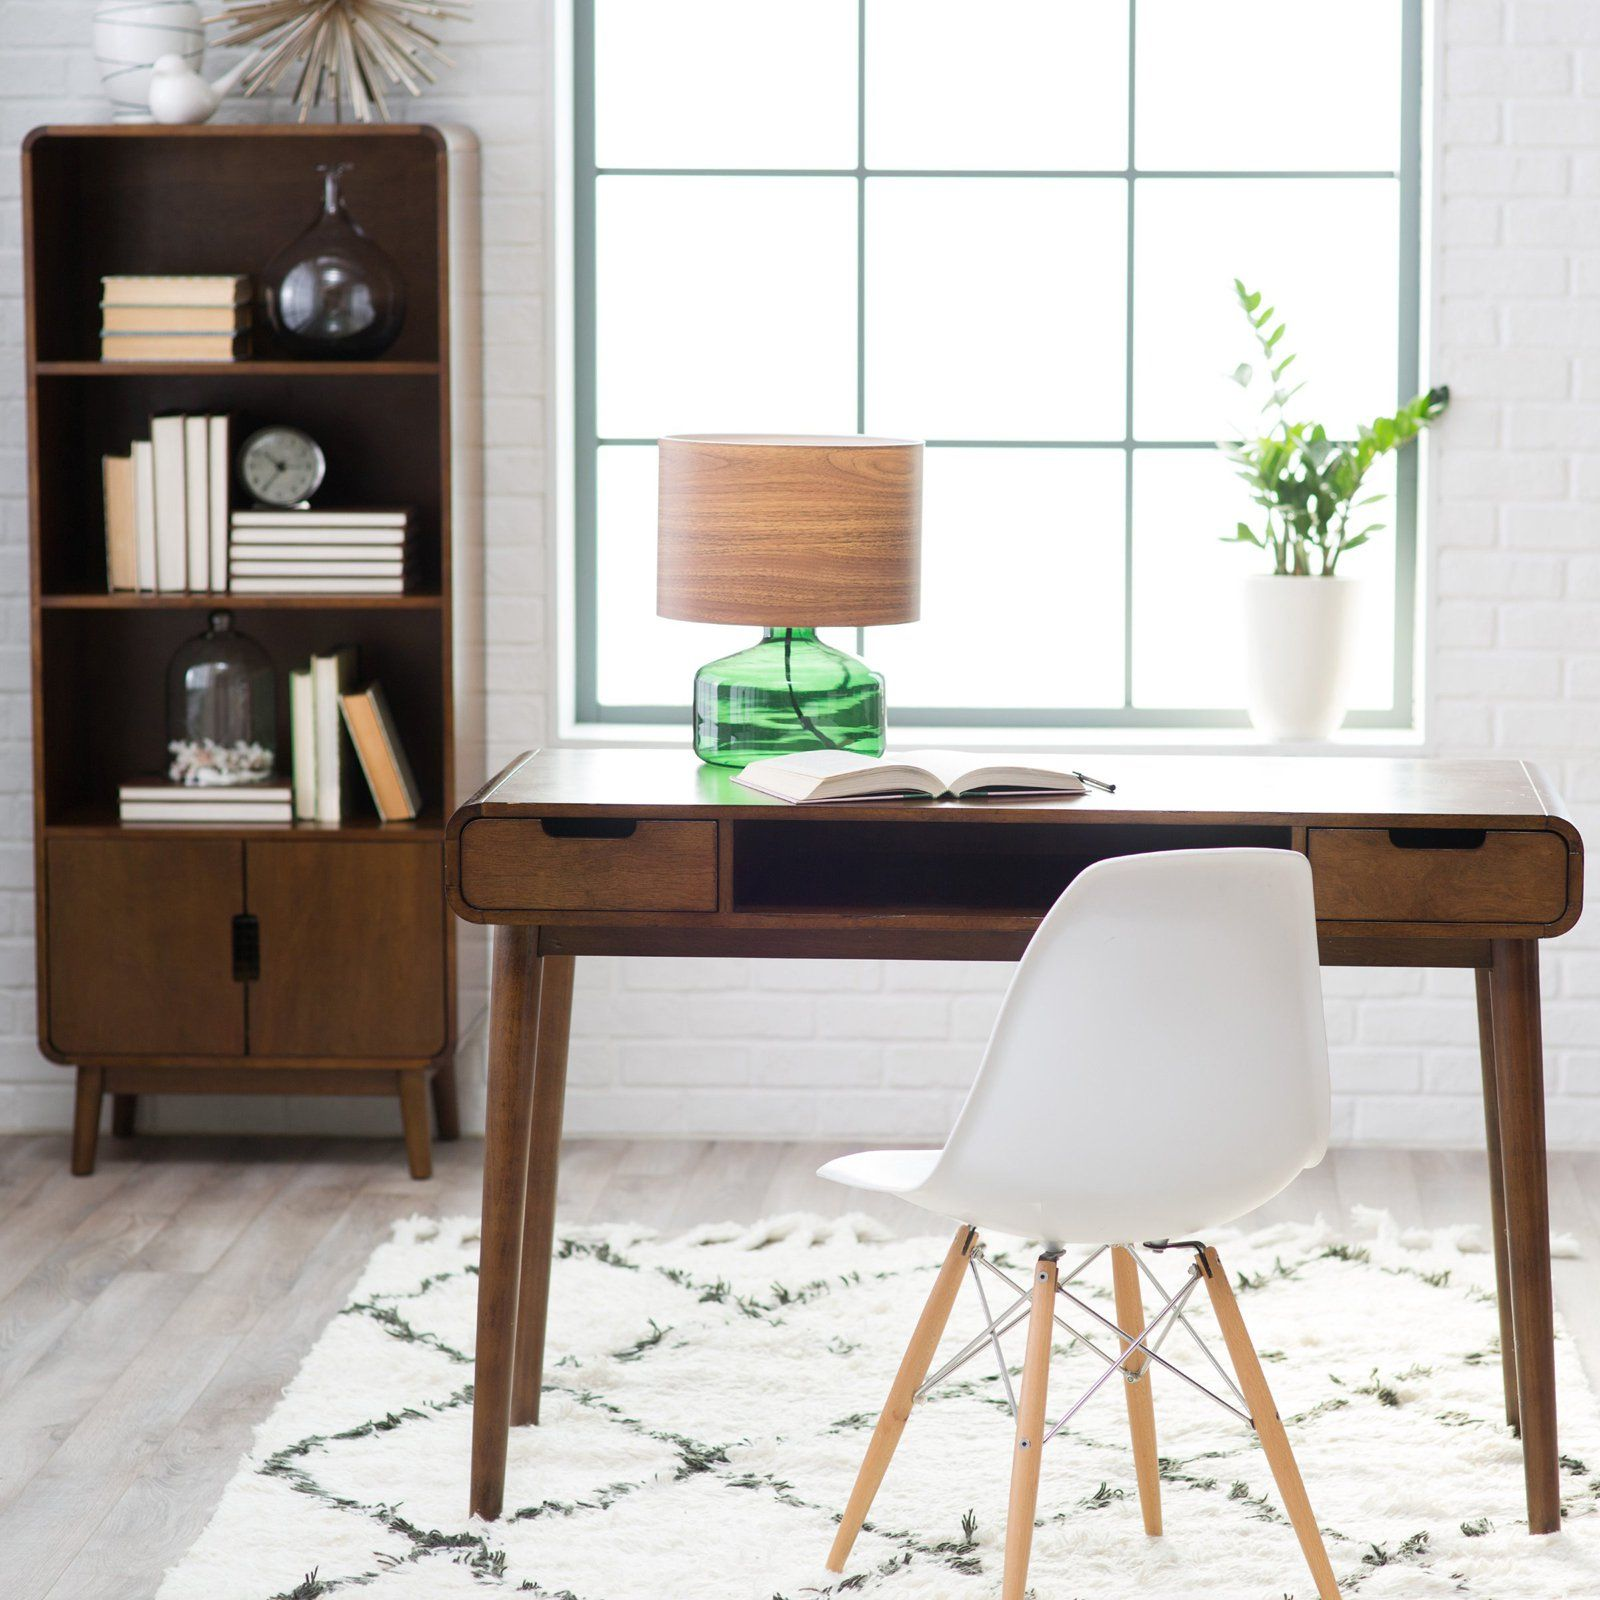 Belham Living Carter Mid Century Modern Writing Desk Writing Desk Modern Mid Century Modern Desk Mid Century Modern Office